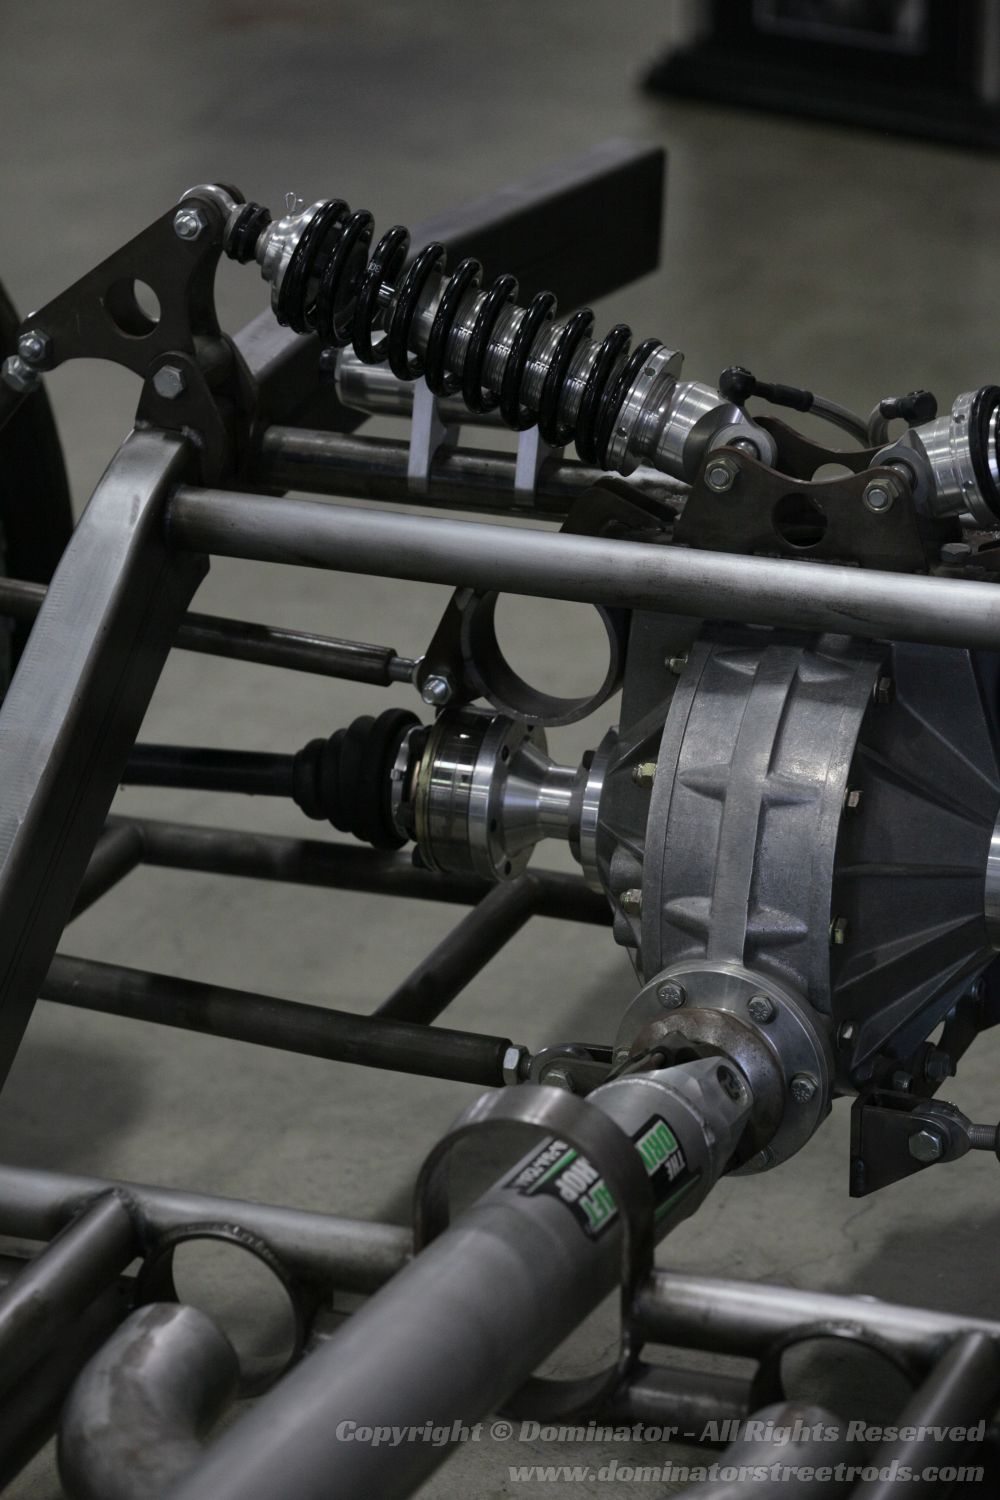 Chassis & Suspension021.jpg